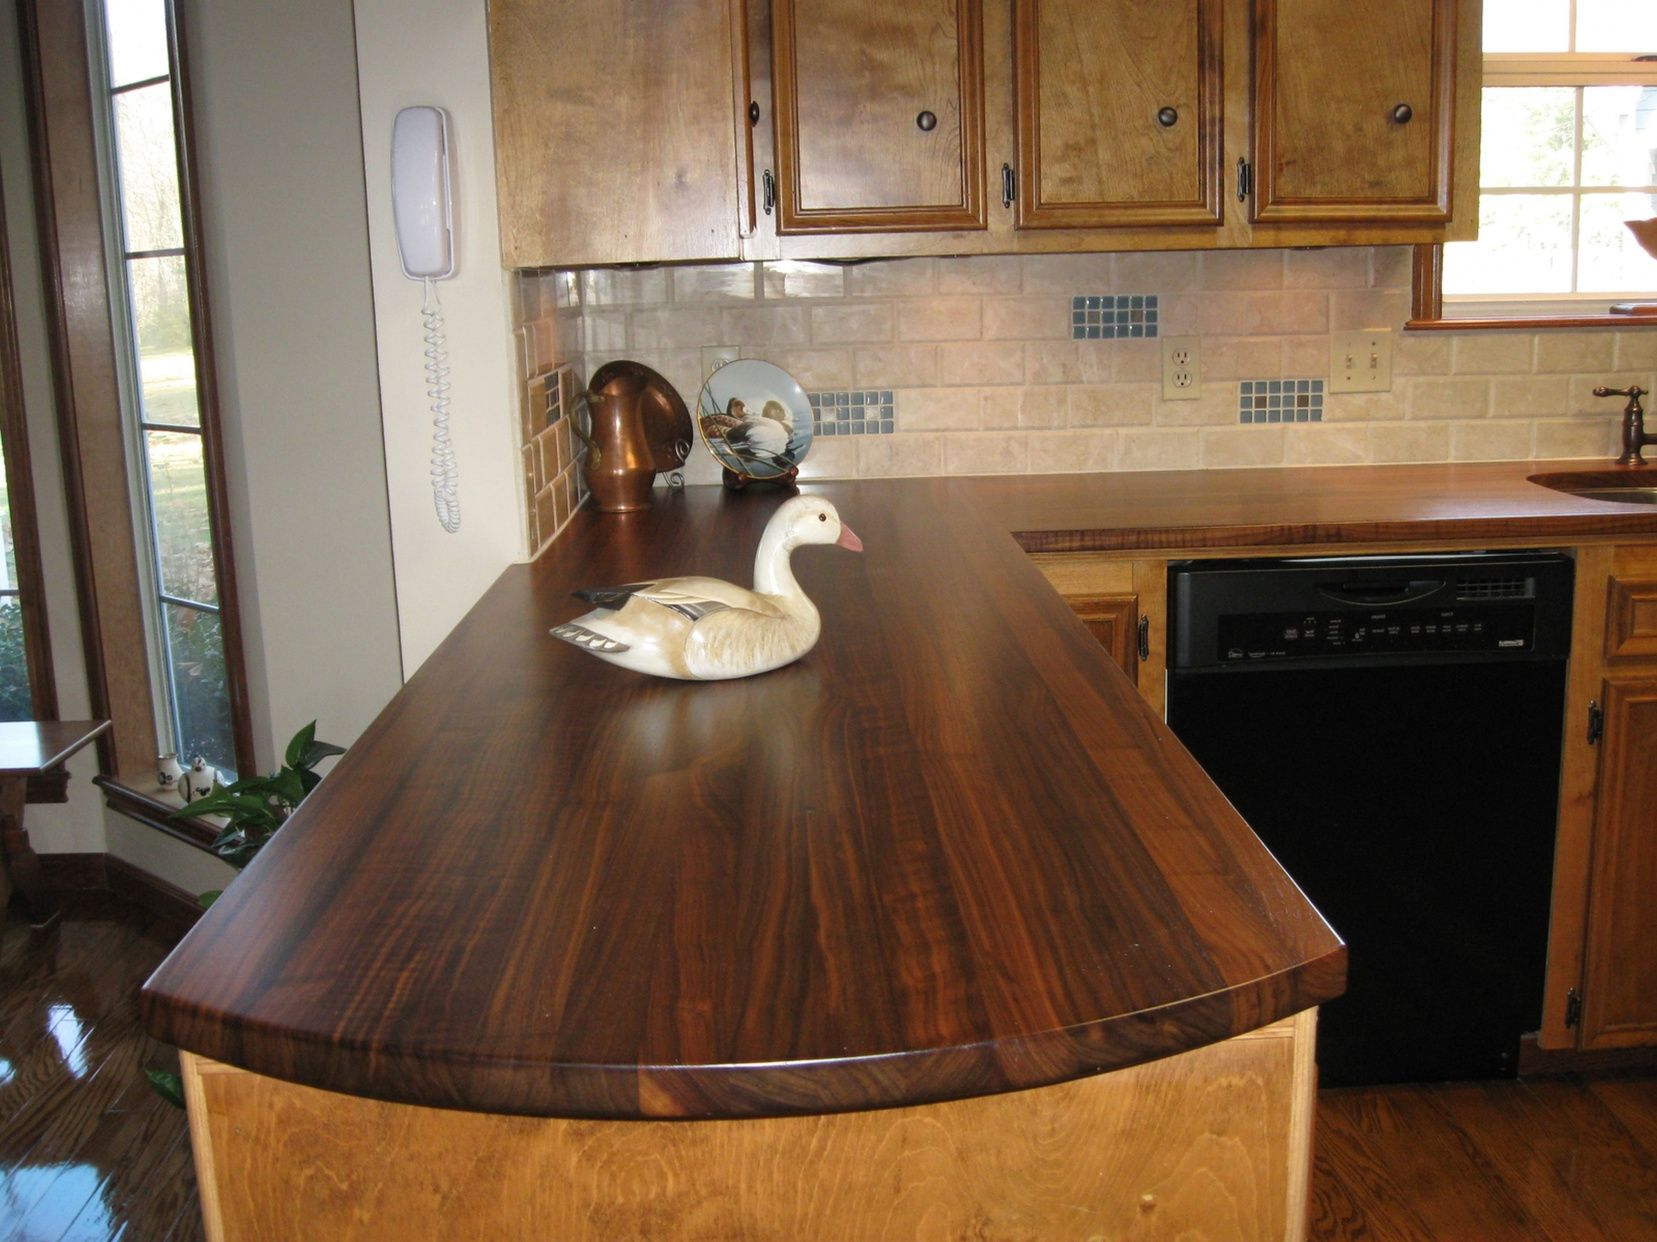 55 Granite Overlay Countertops Home Depot Small Kitchen